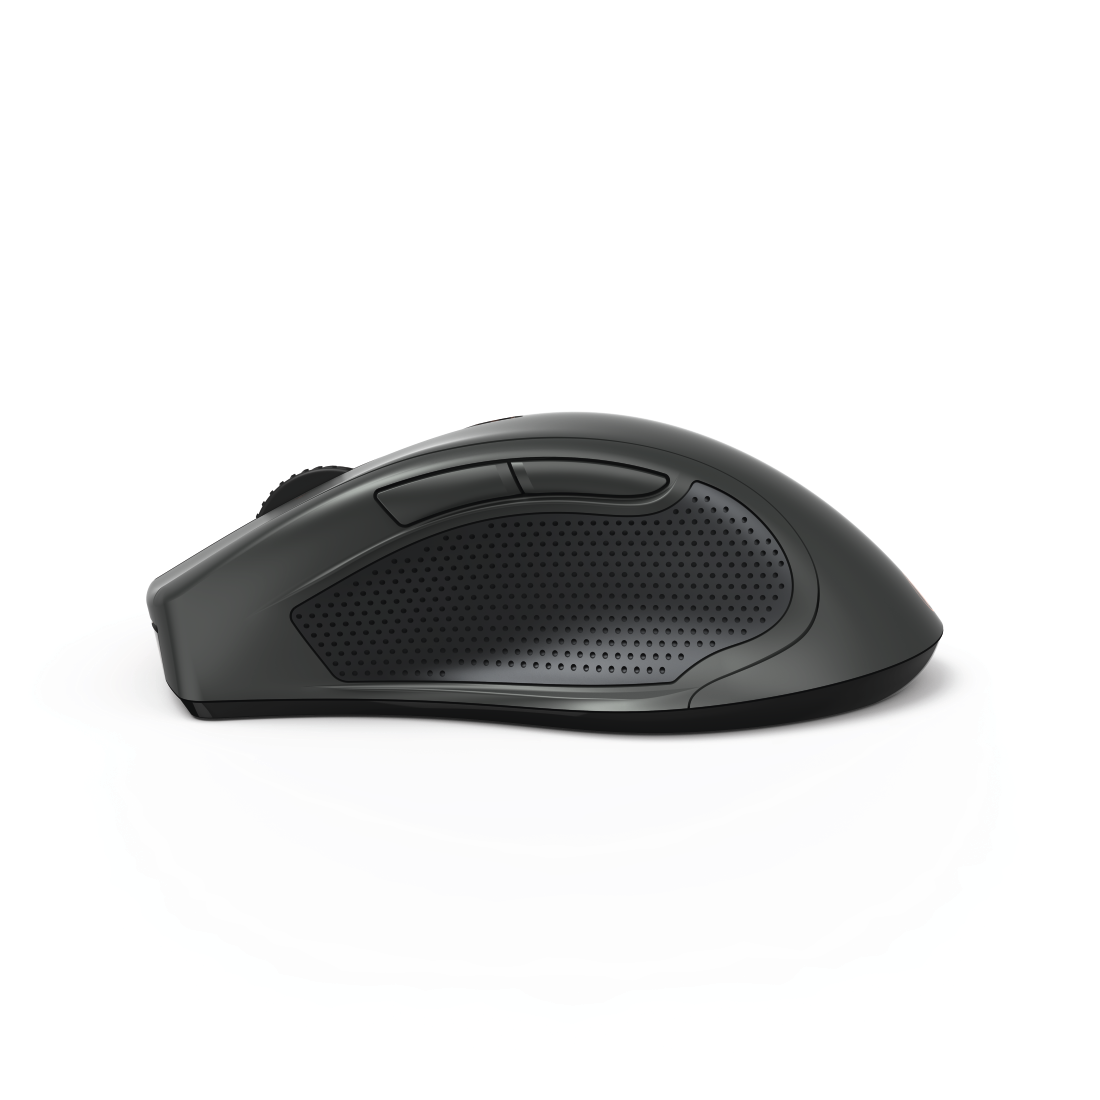 "abx4 High-Res Image4 - Hama, ""MW-900"" 7-Button Laser Wireless Mouse, Auto-dpi, black"